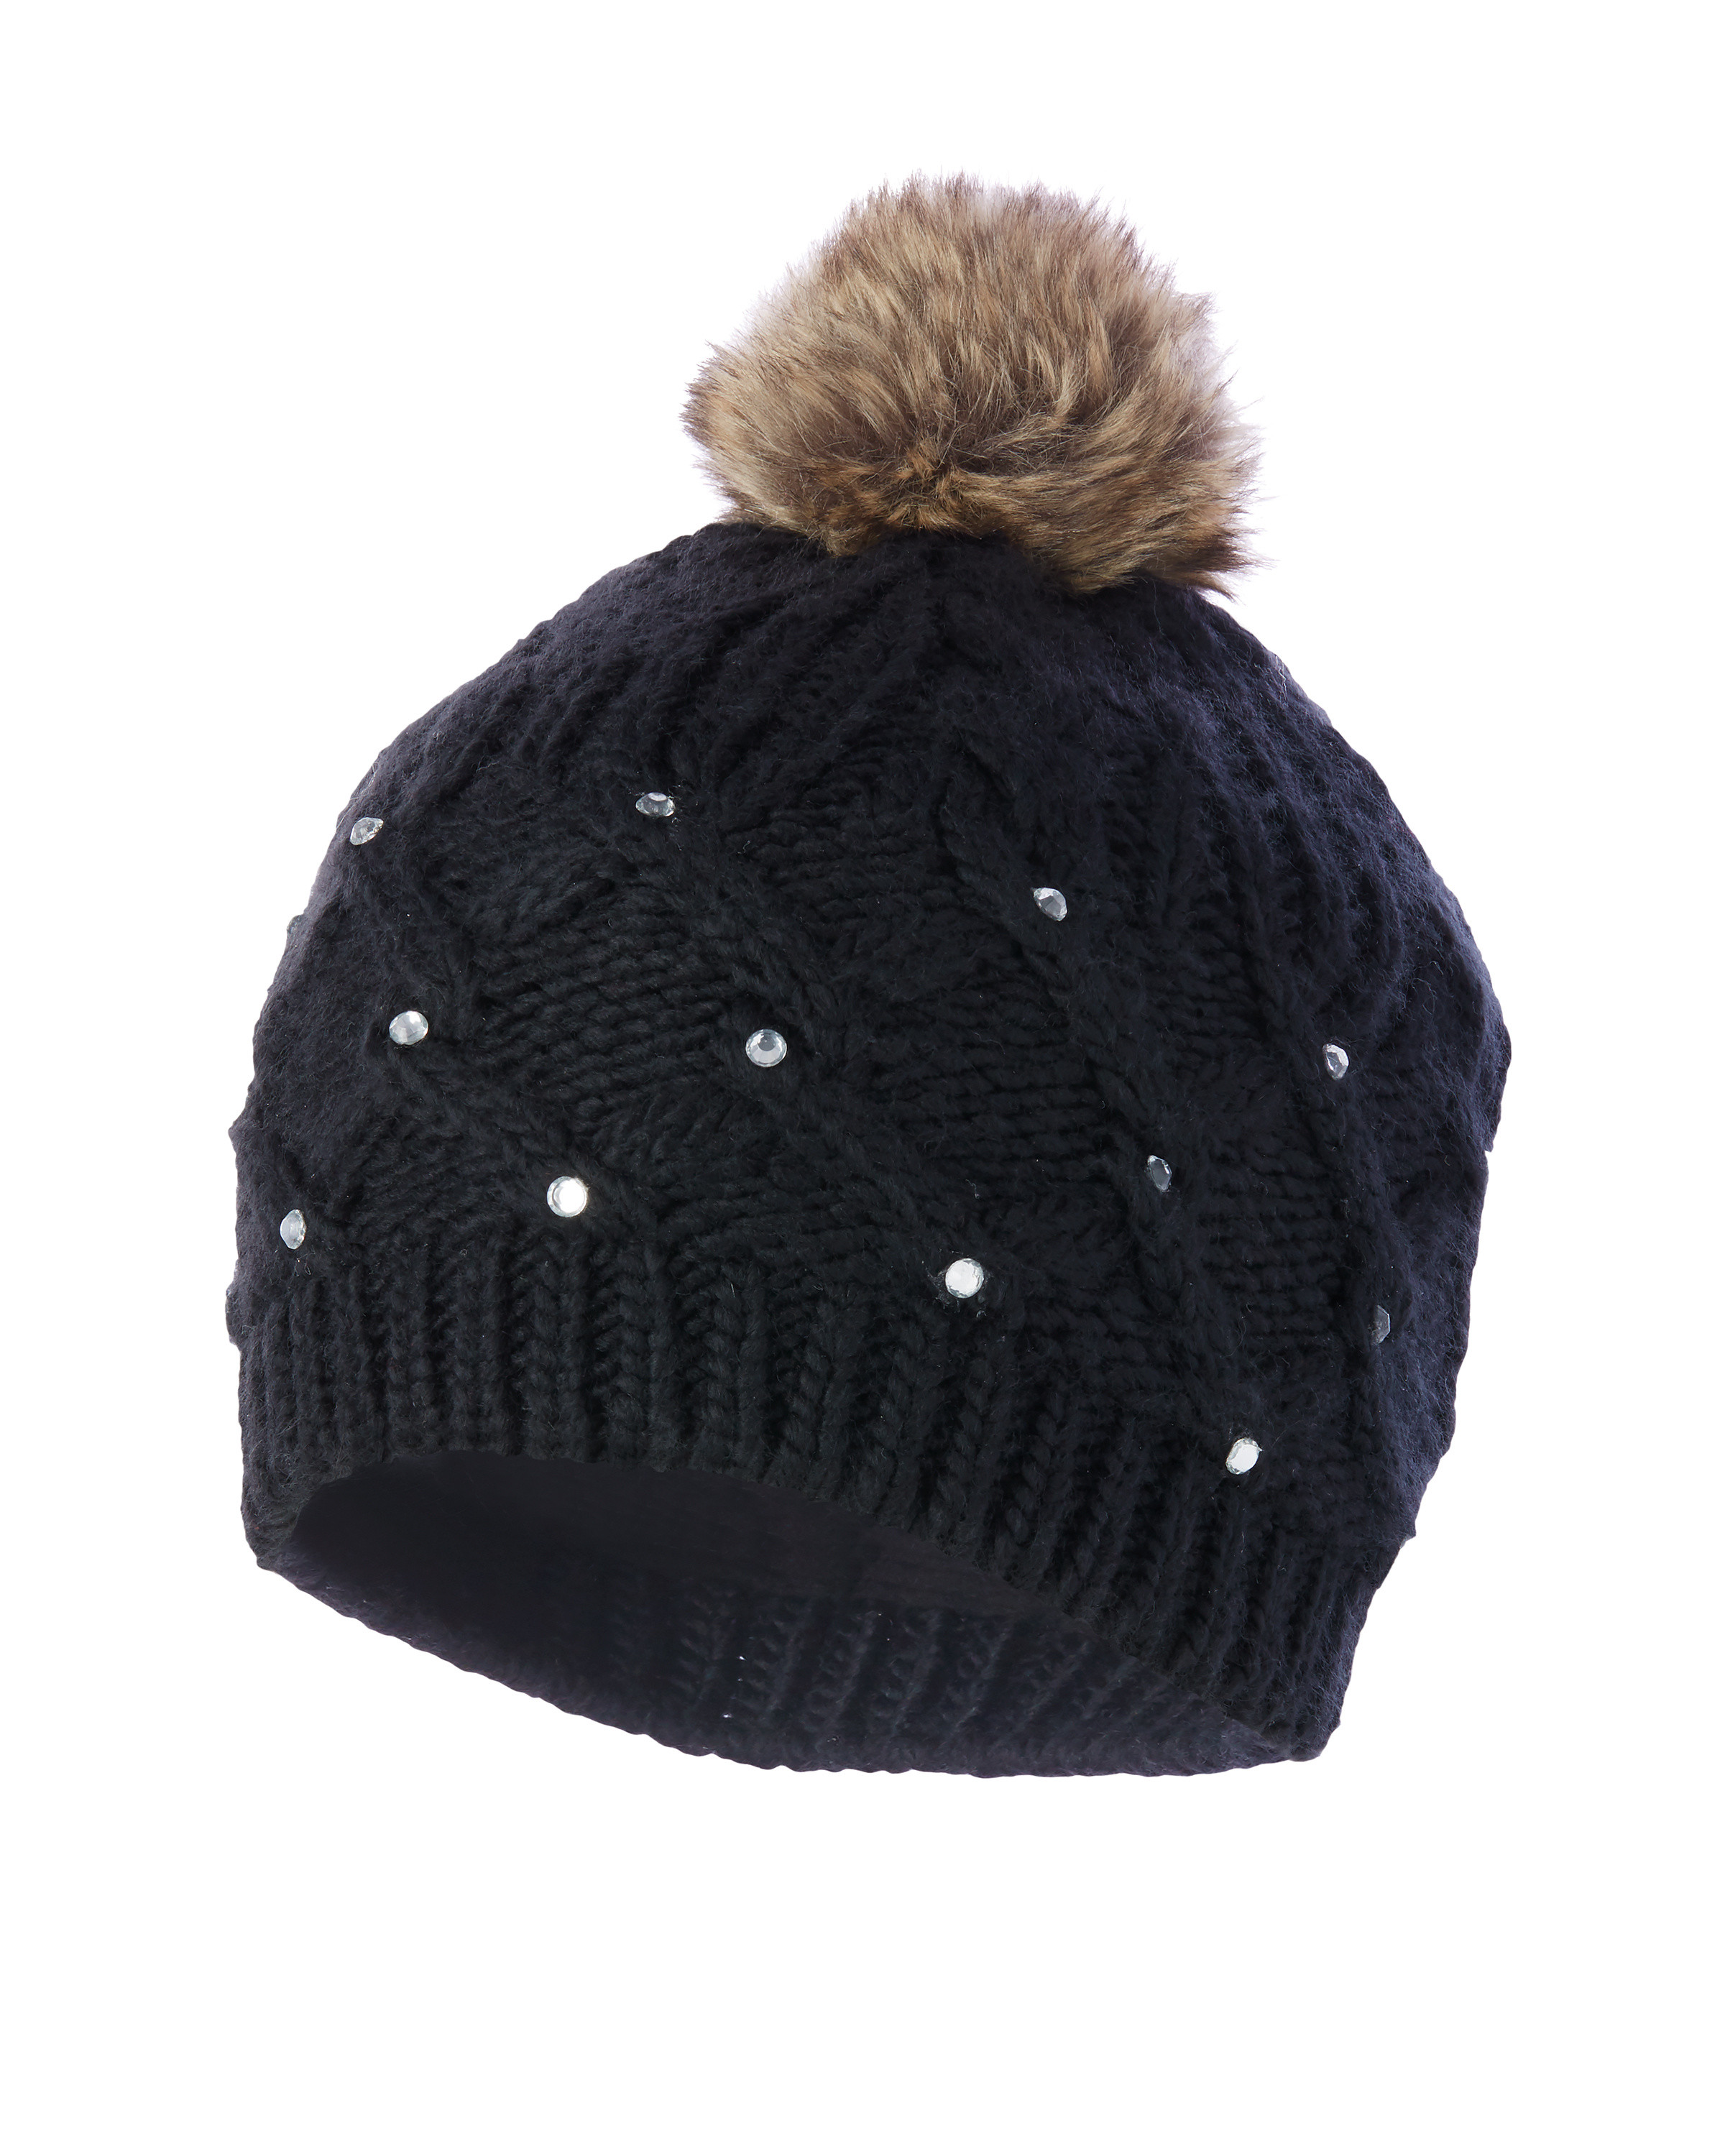 445db867eb3 Inoc Faux Fur Knitted Bobble Hat - ALDI UK